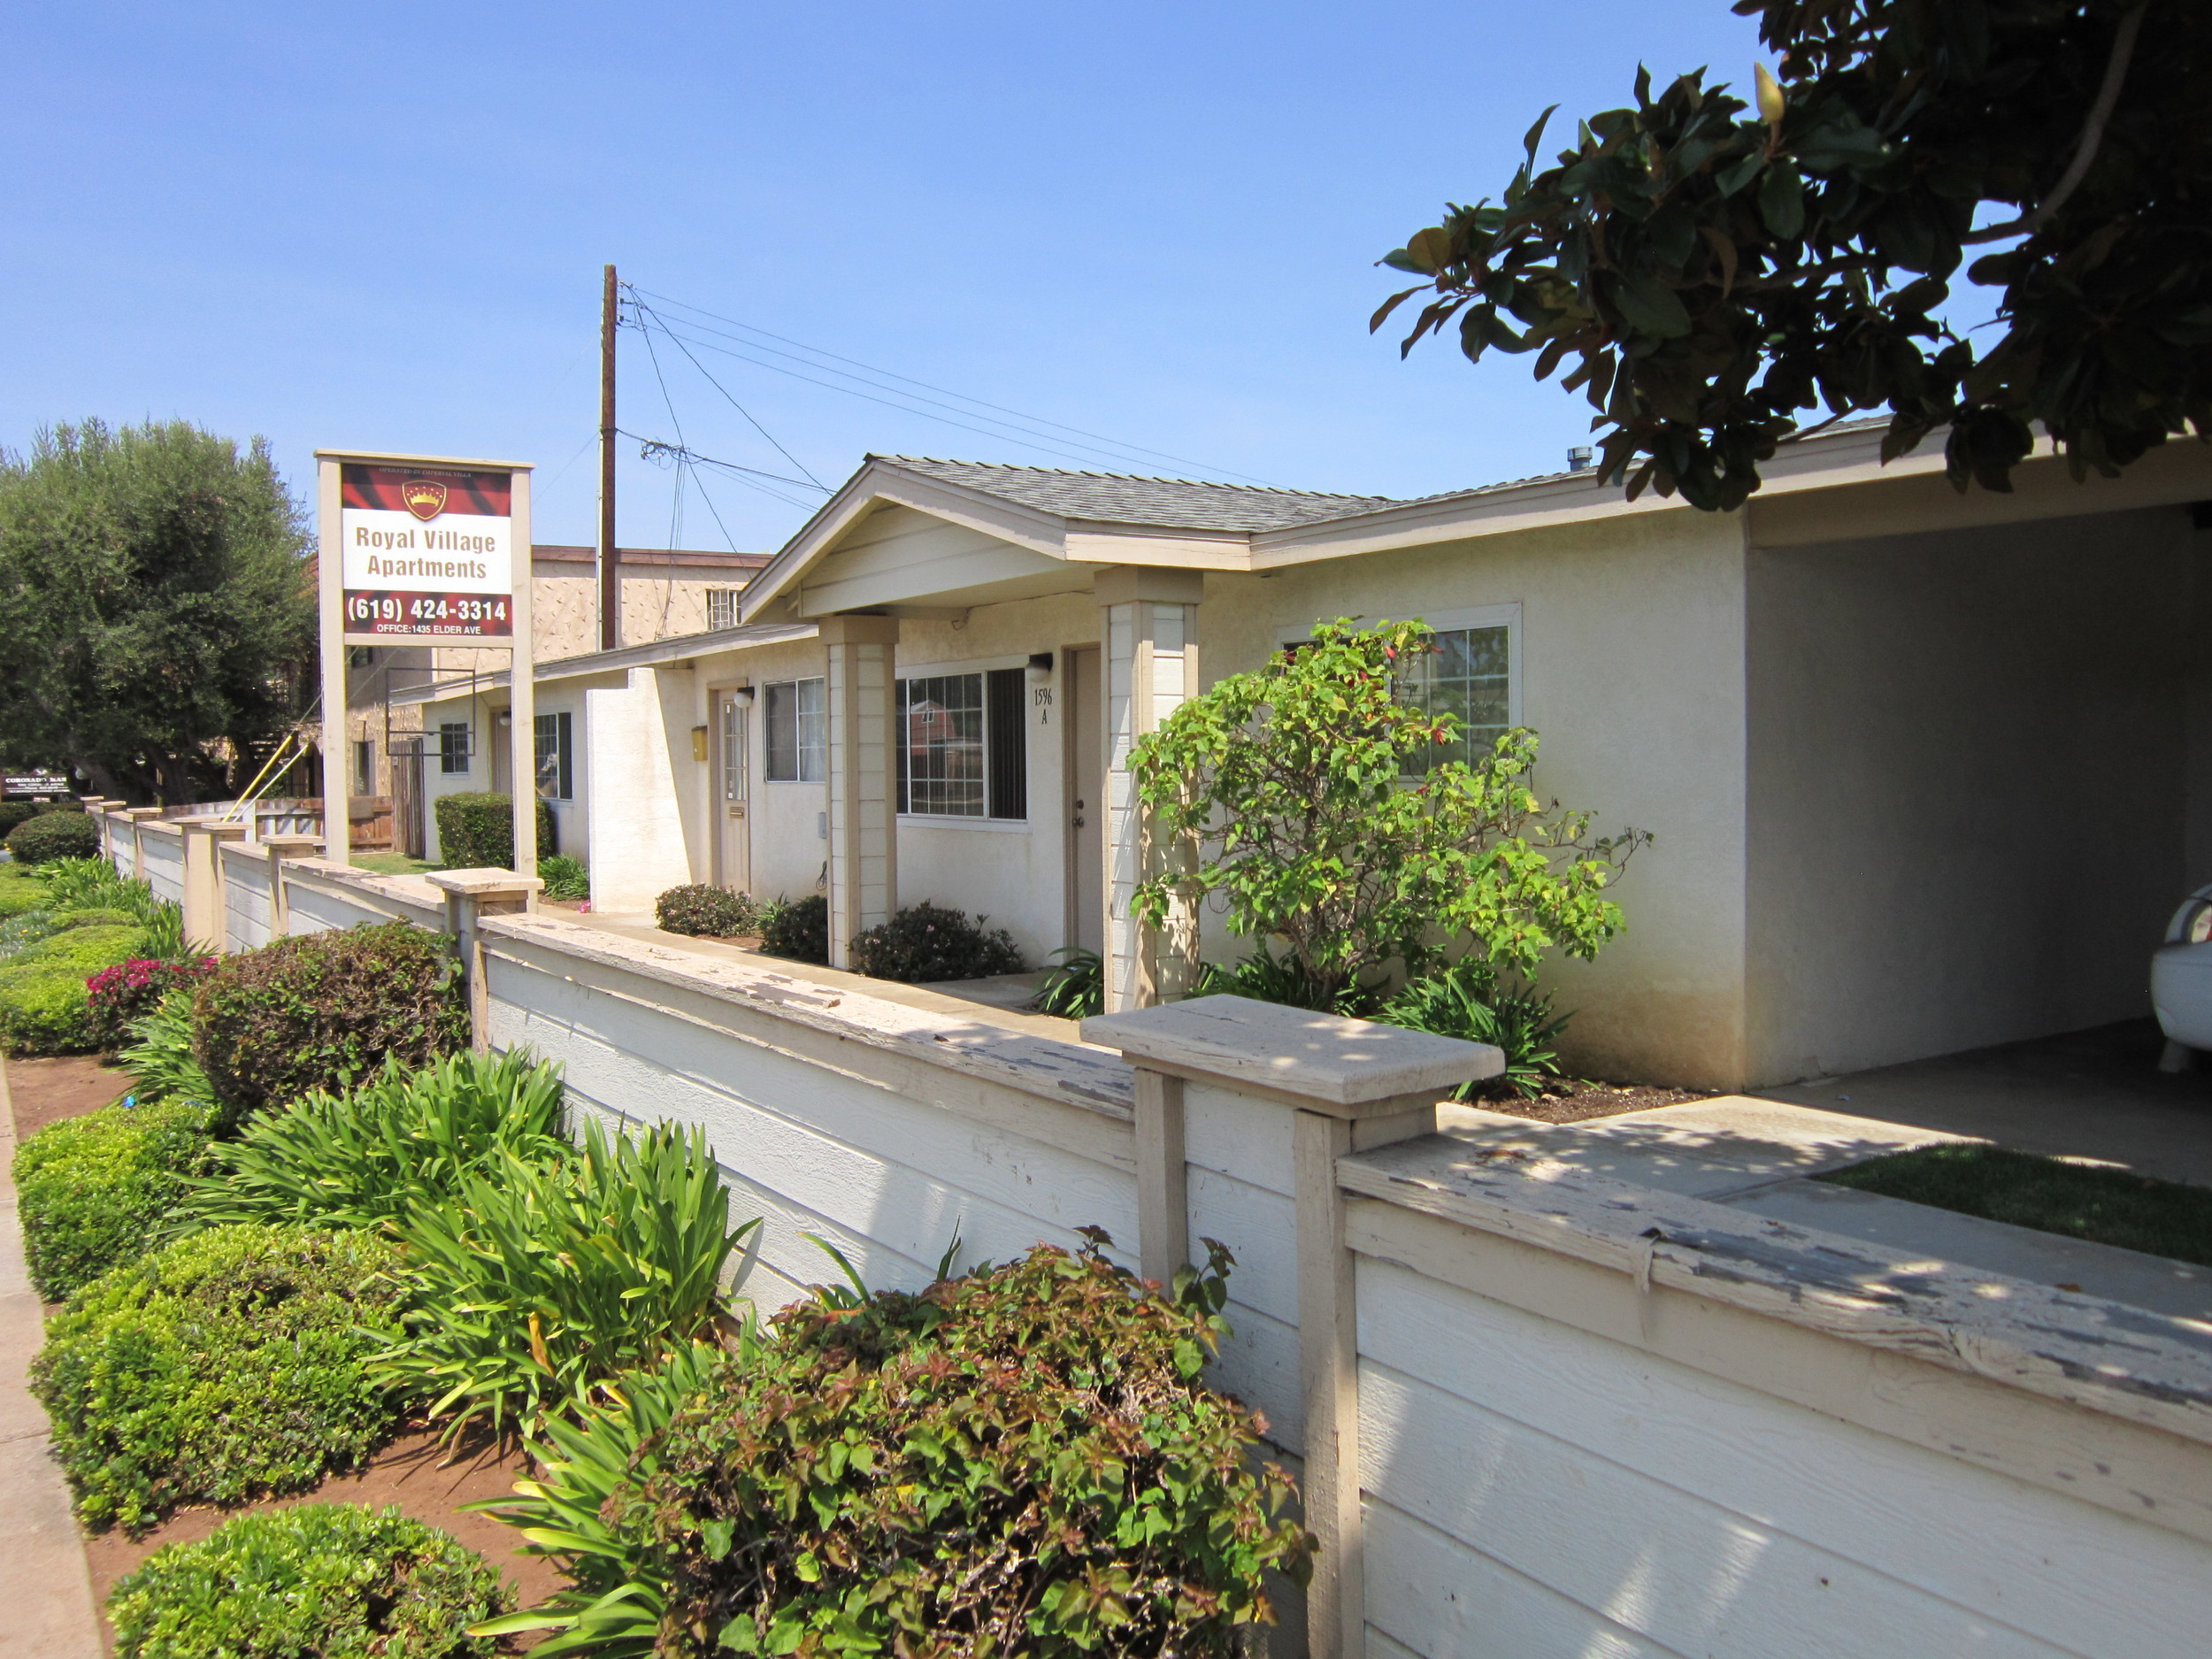 Sold - Royal Village Apartments - Imperial Beach, Ca.